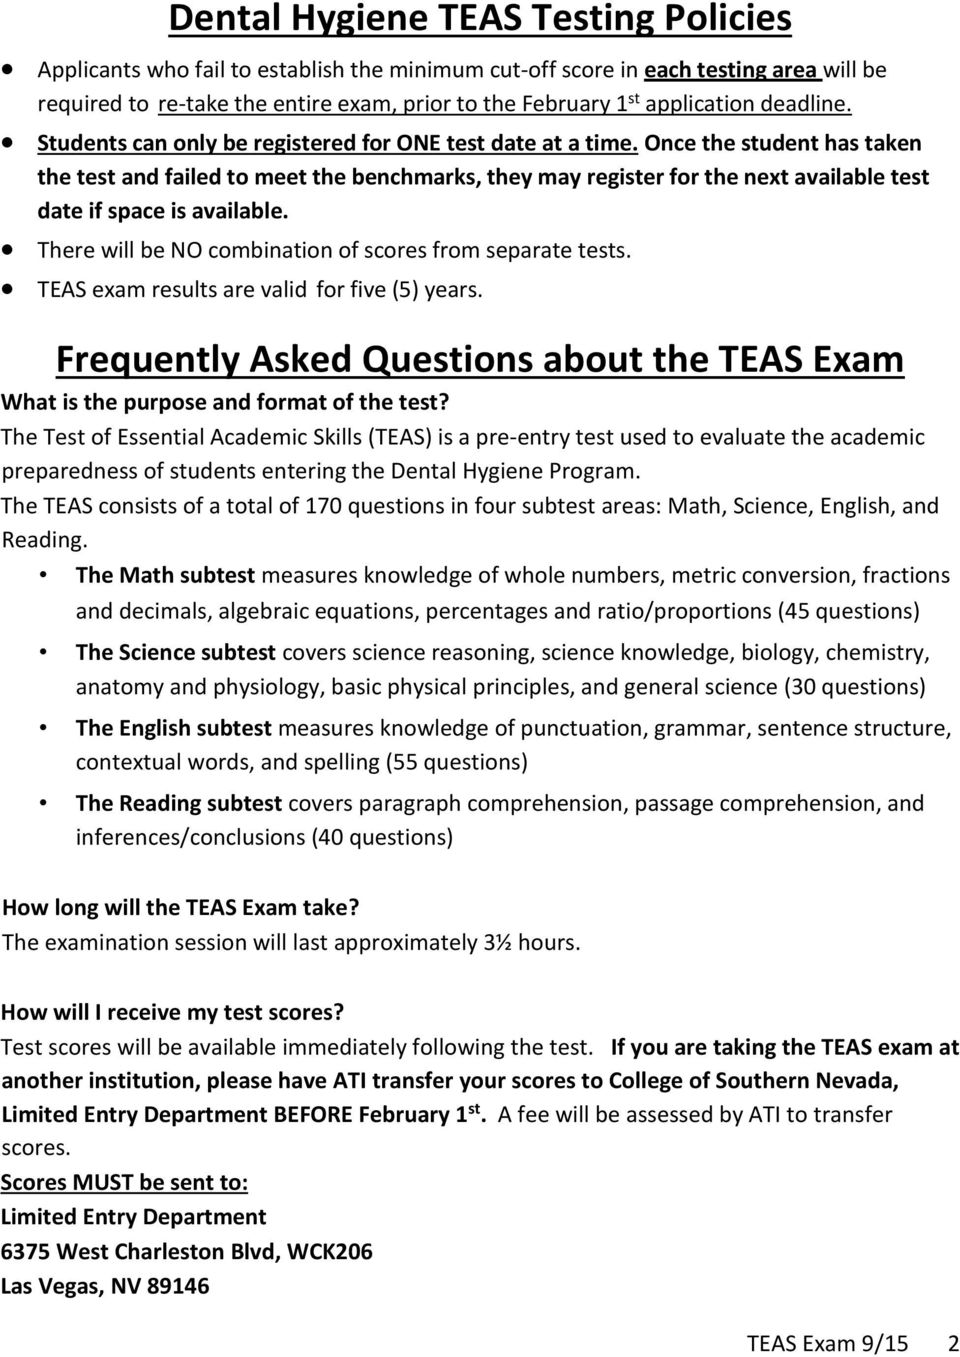 ... Exam 9/15 2. Once the student has taken the test and failed to meet the  benchmarks, they may